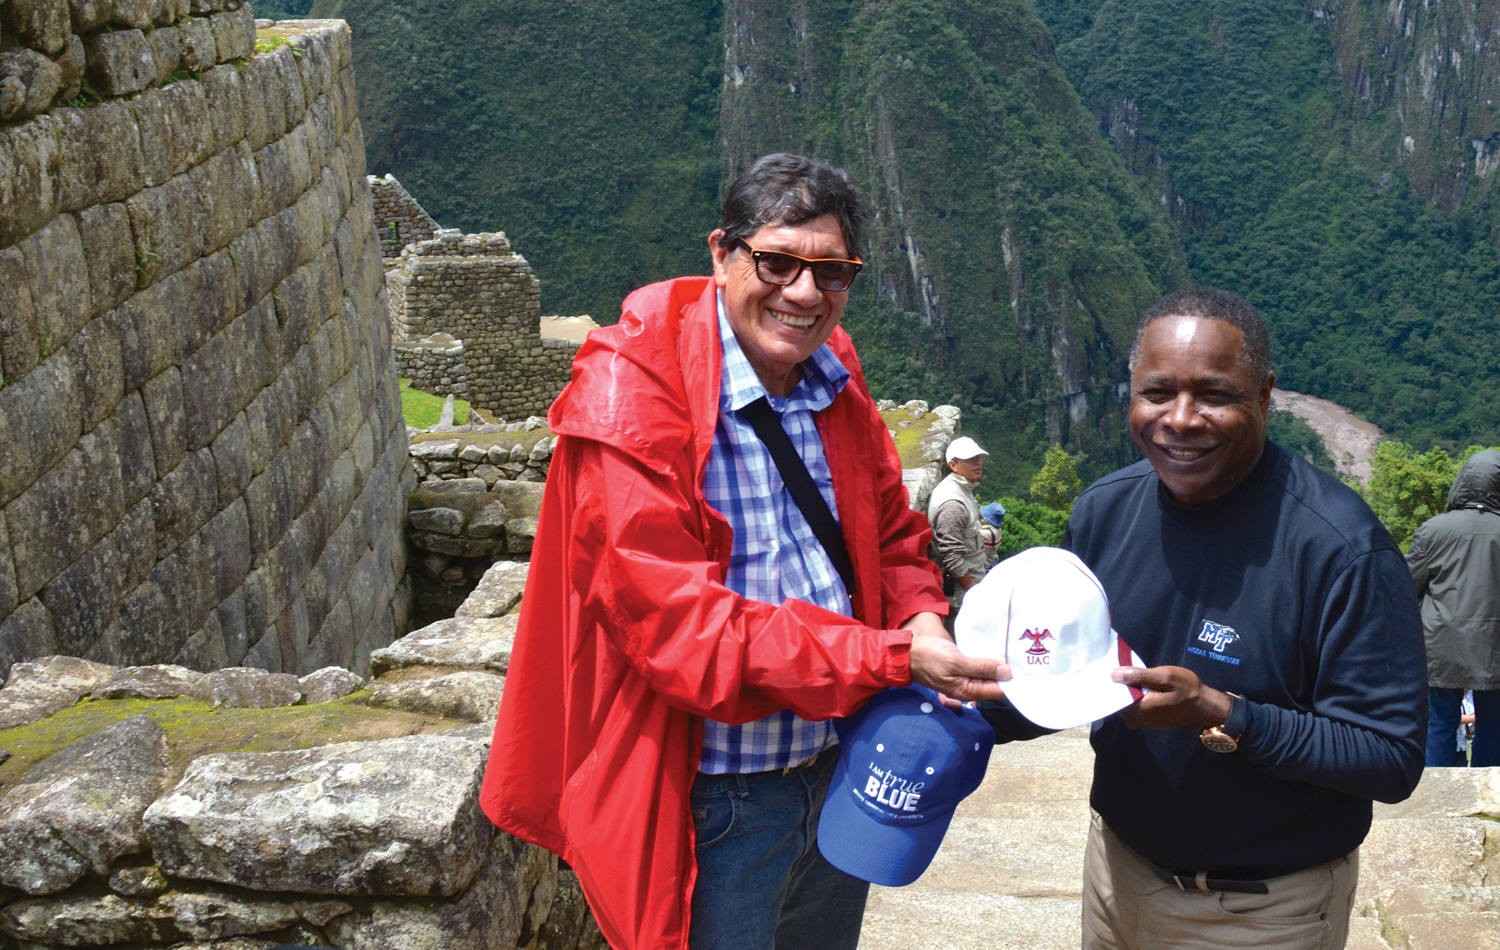 Alejandro Paul Pletickosich Picon (left), director of social responsibility and university extension at Universidad Andina Del Cusco, and MTSU President Sidney A. McPhee exchange university hats Saturday while touring the Inca Empire ruins at Machu Picchu, near Cusco, Peru. (MTSU photo by Andrew Oppmann)